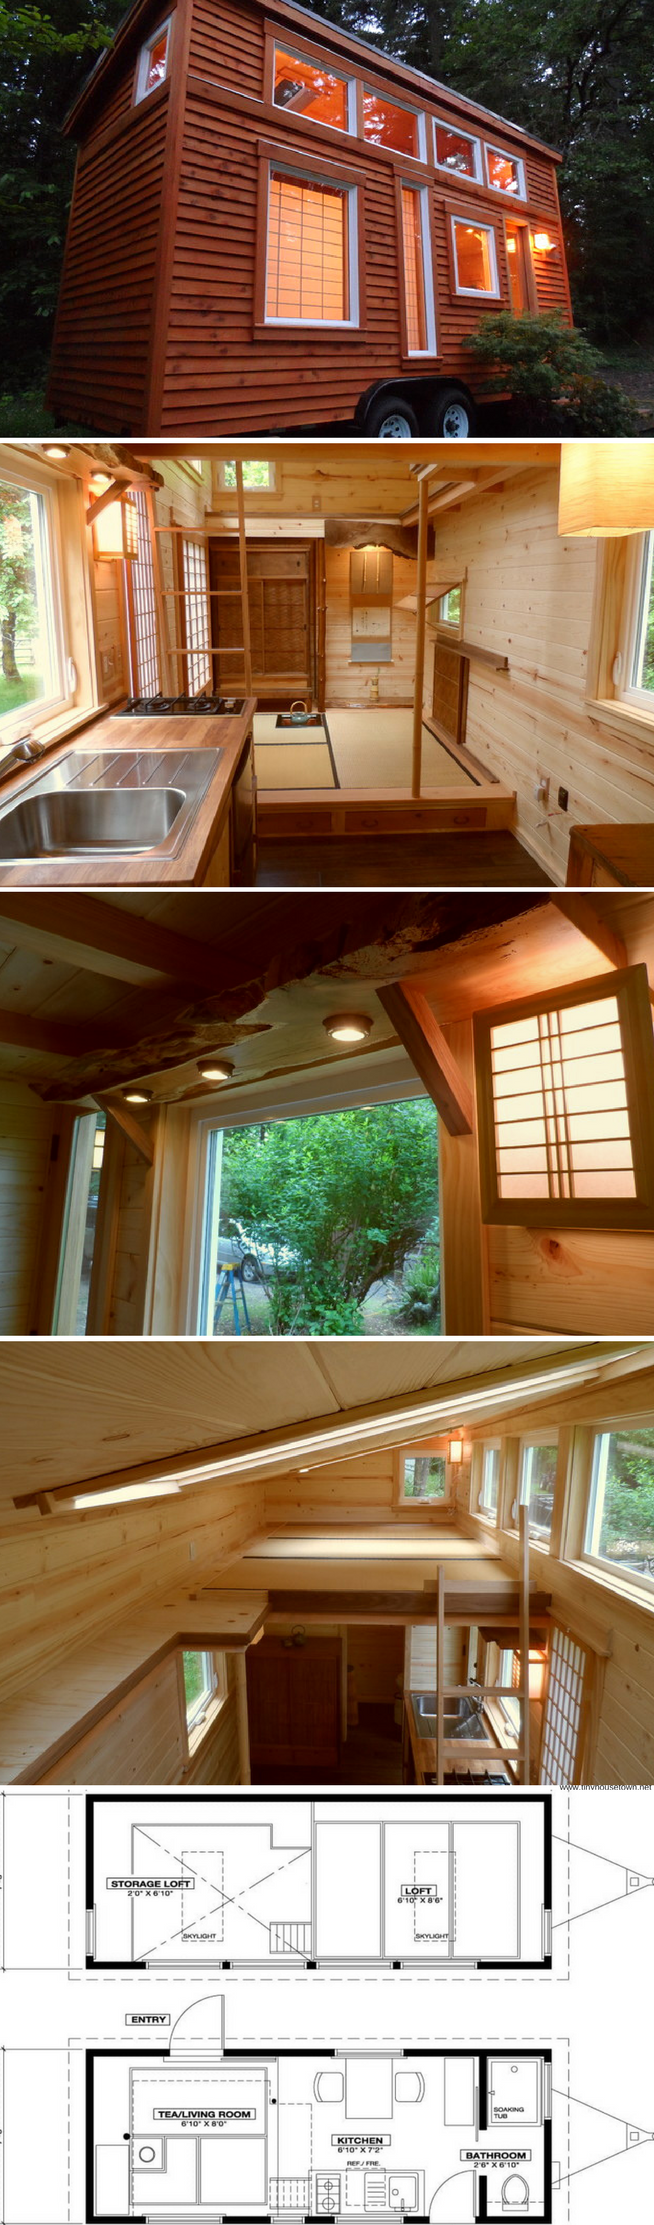 Tiny Tea House Cottage (225 sq ft) | Tiny Houses | Pinterest | Teas Tiny Tea House Design on mobile tea house, small beach house, japanese house, huntsville tea house, hearst tea house, cottage tea house, miniature tea house, modern chinese tea house, tiny texas houses, trailer house, winter harbor maine tea house, tiny houses on wheels, geisha tea house, cambridge tea house, tiny german, manhattan tea house, paris tea house, tiny houses with three beds, roof house, london tea house,